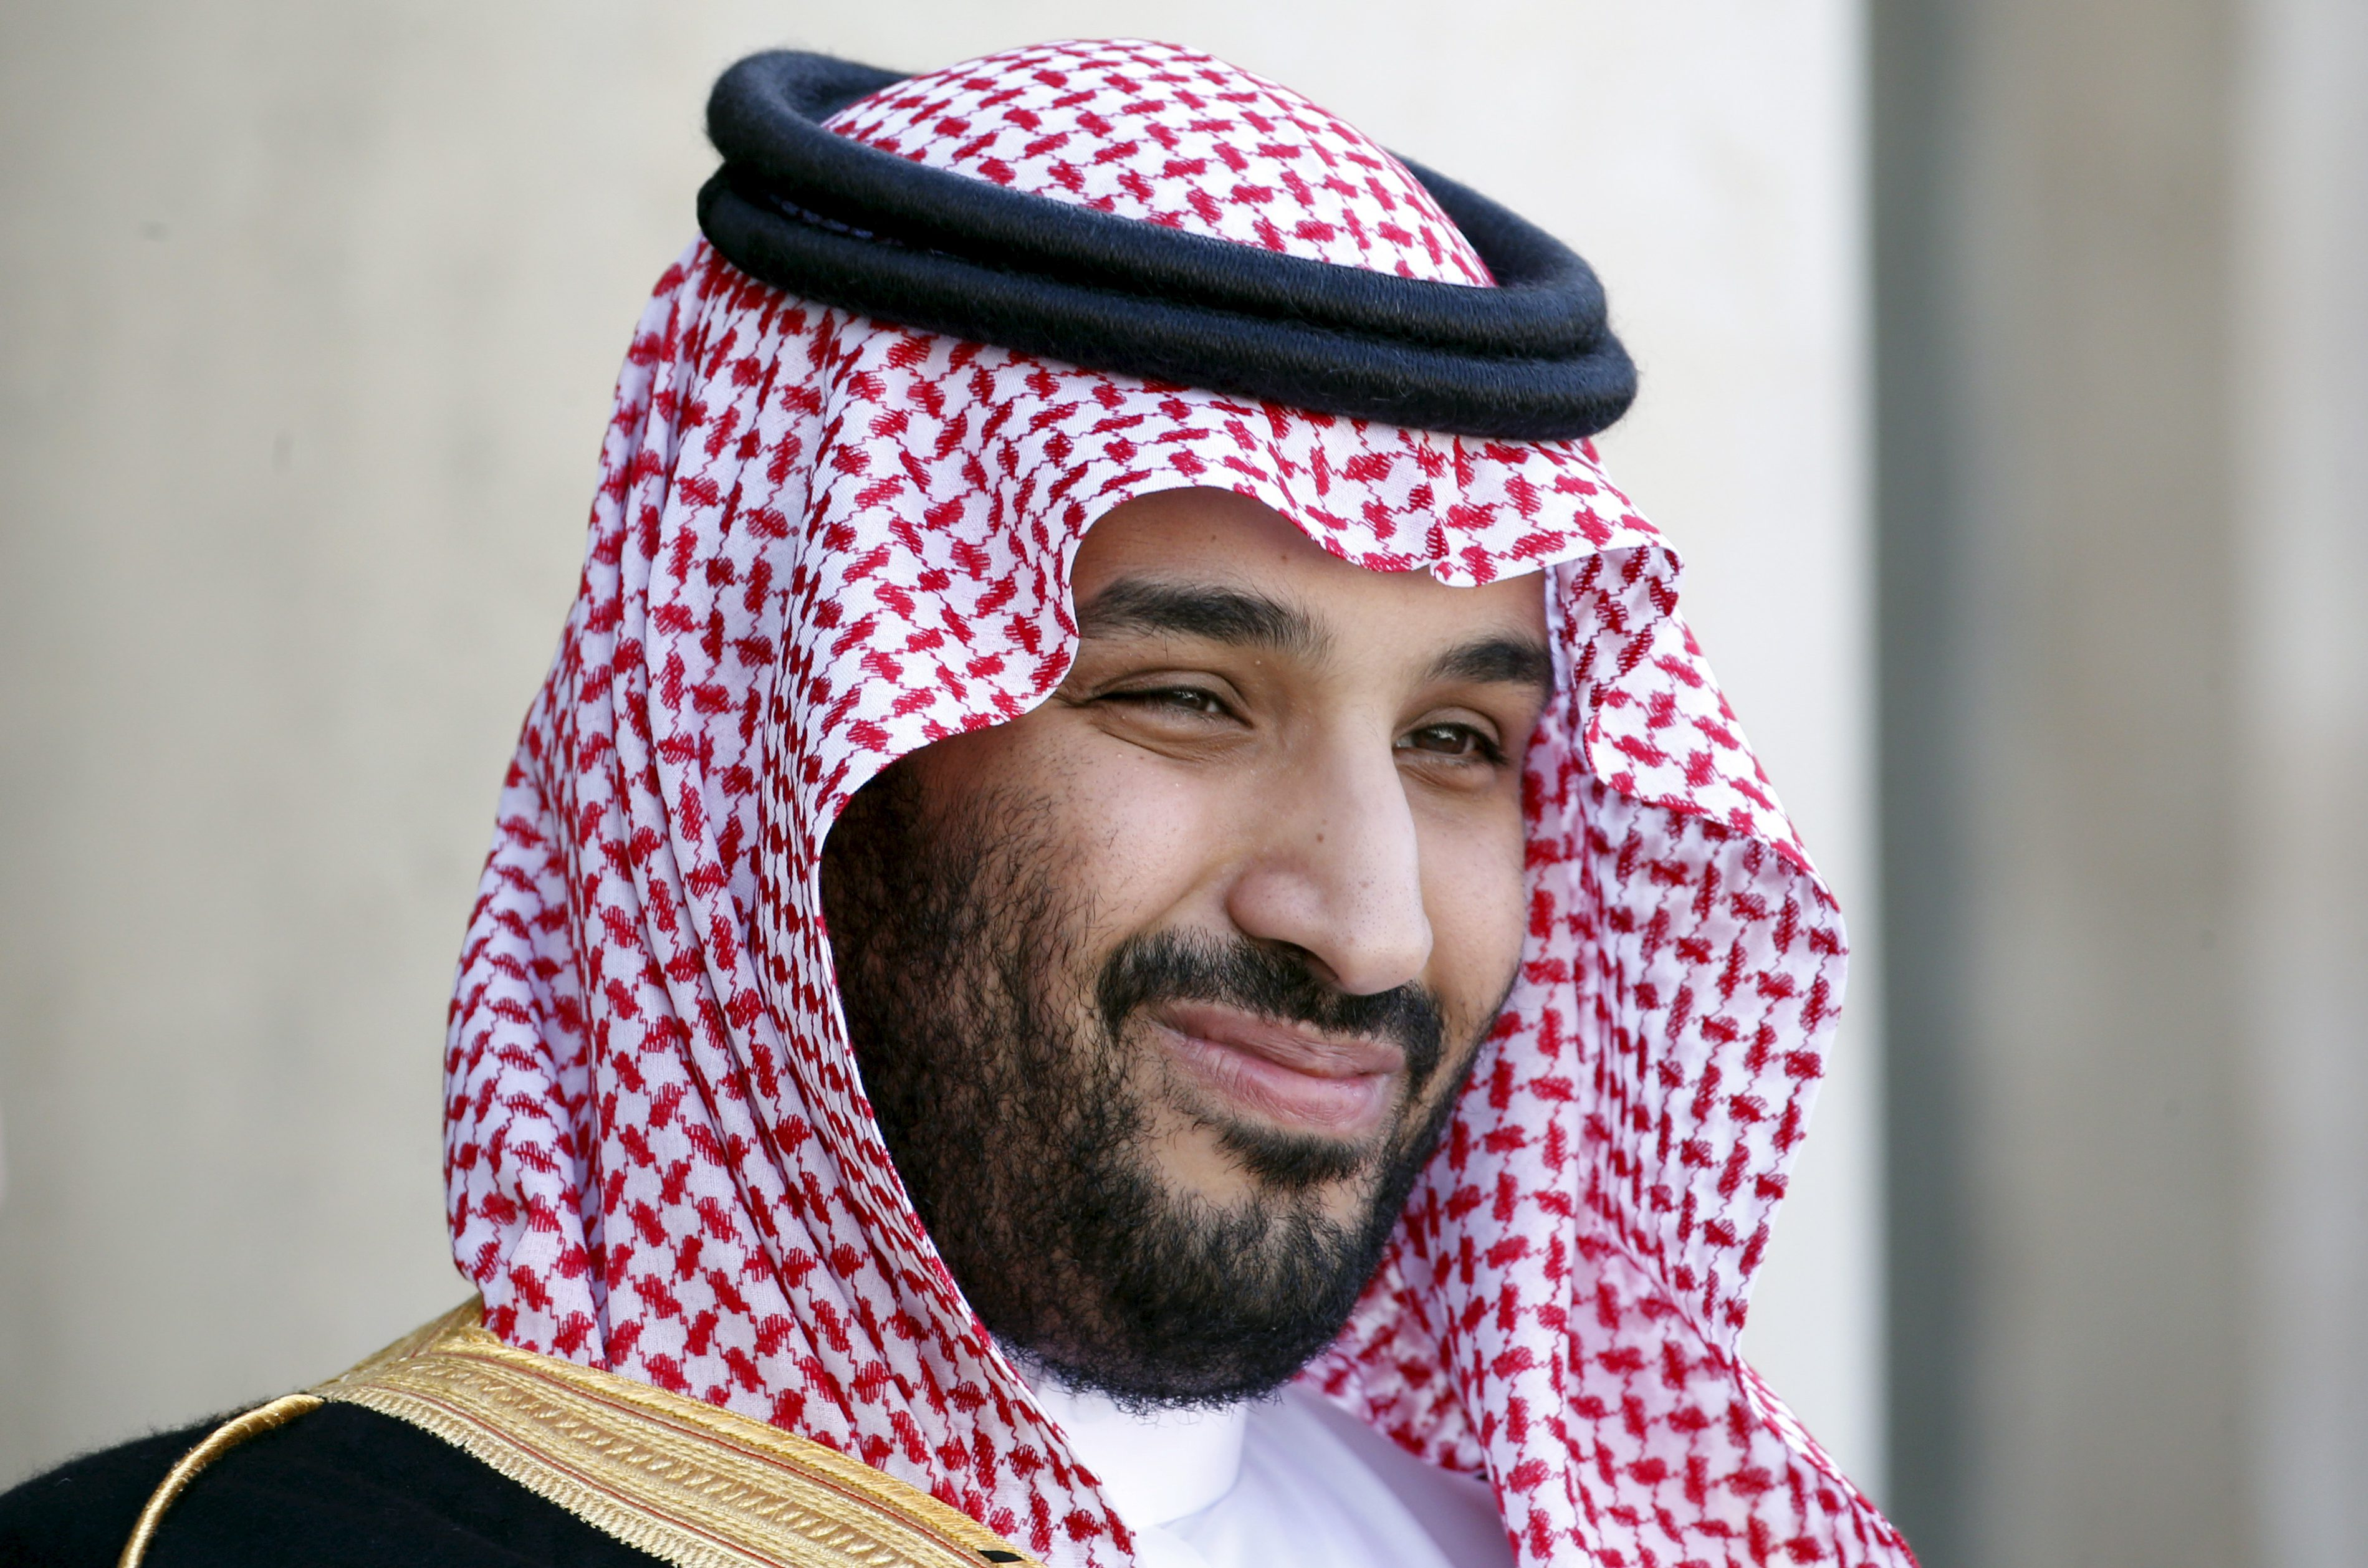 Saudi Arabia's Deputy Crown Prince Mohammed bin Salman reacts upon his arrival at the Elysee Palace in Paris, France in this June 24, 2015 file photo.